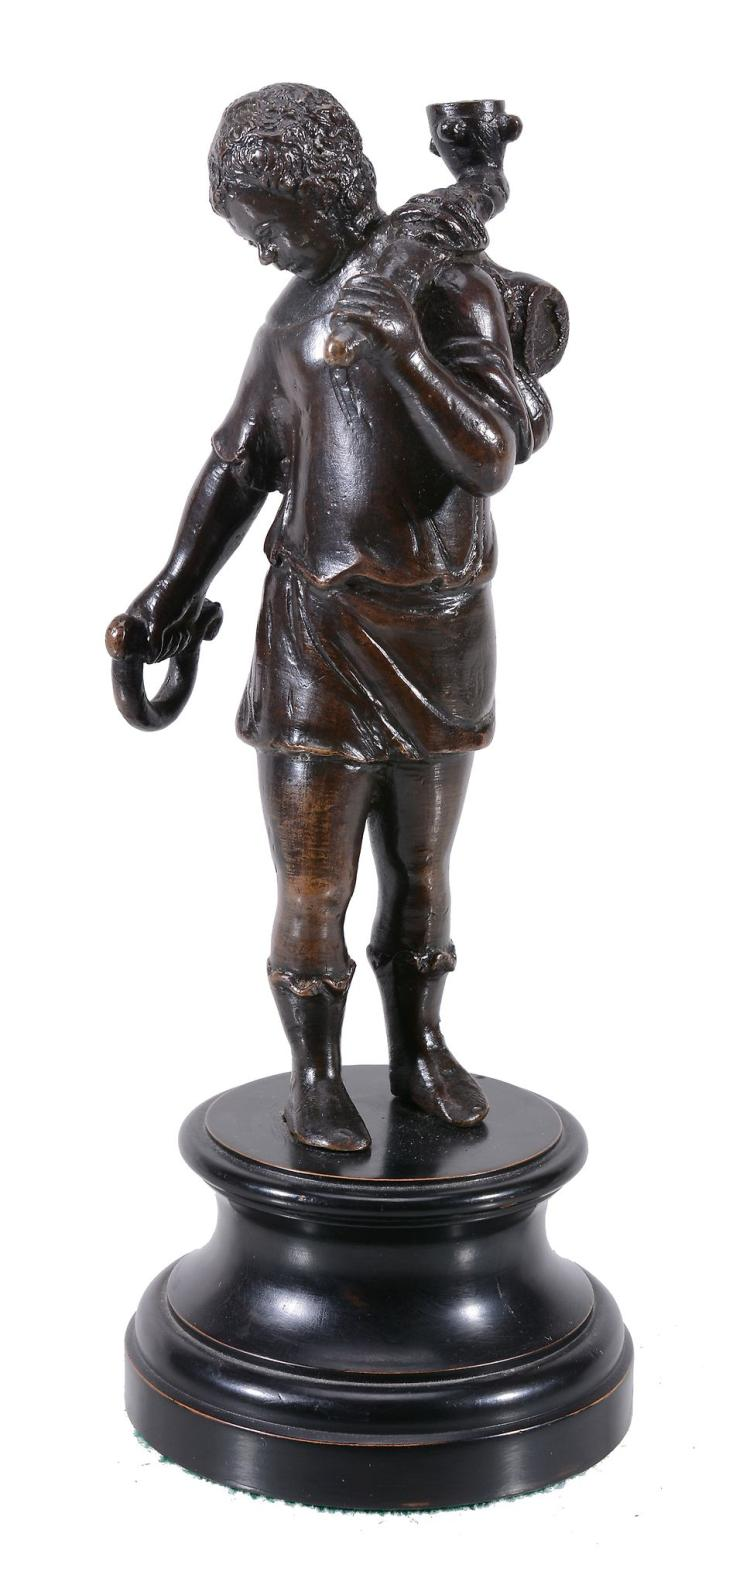 A bronze model of a young man, sometimes called Tobias